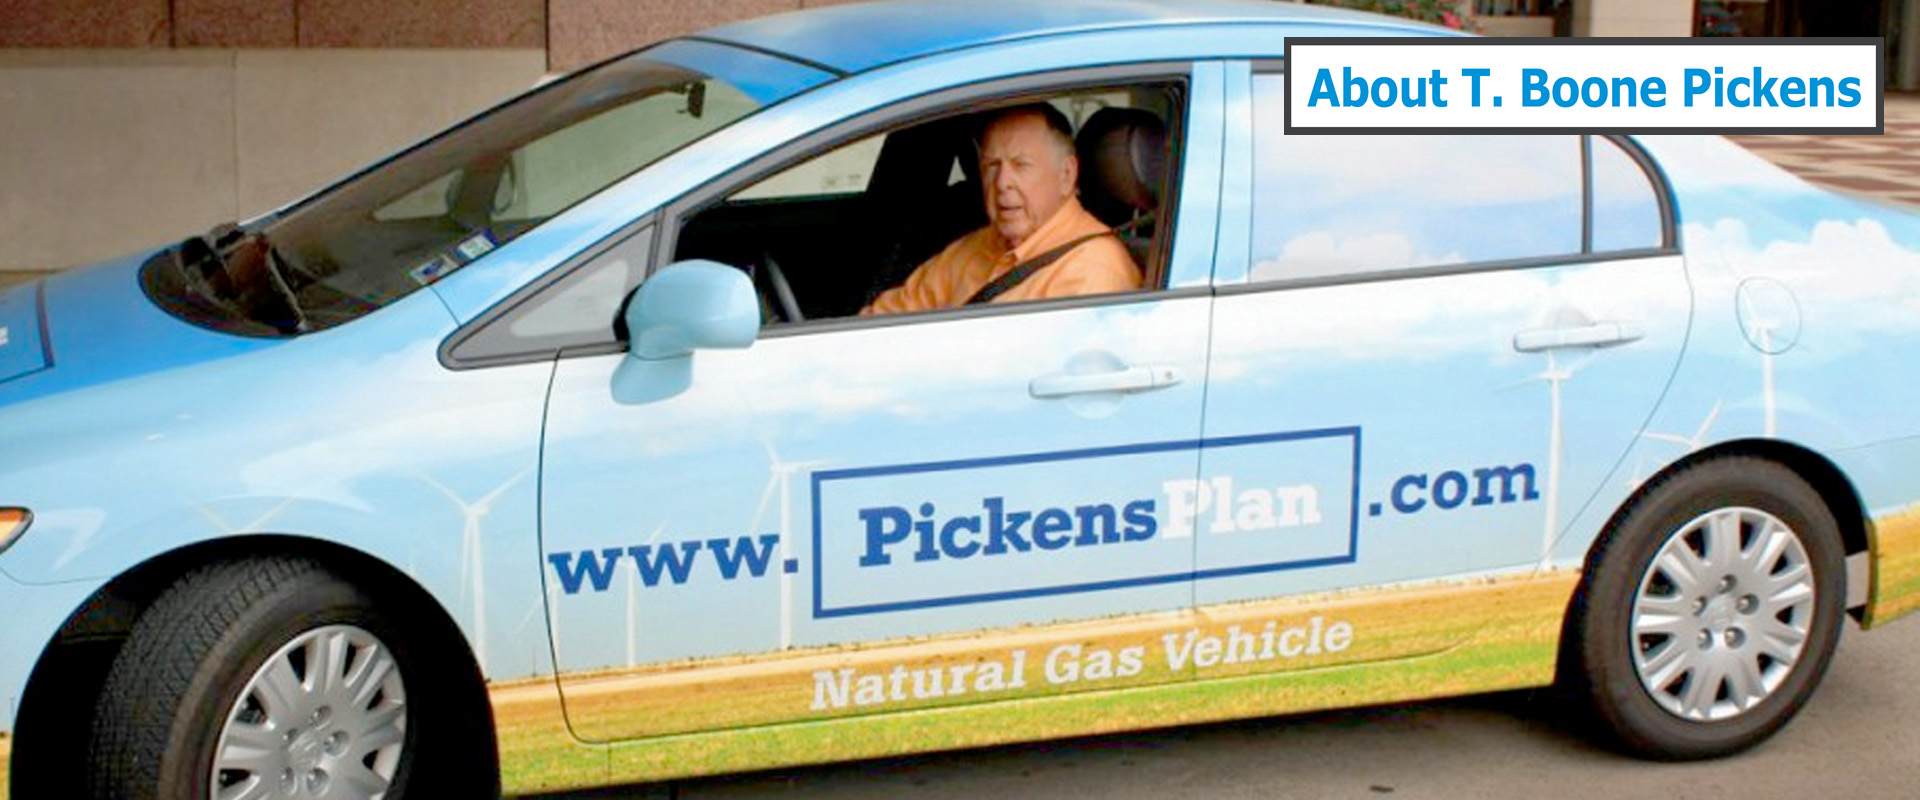 About T. Boone Pickens